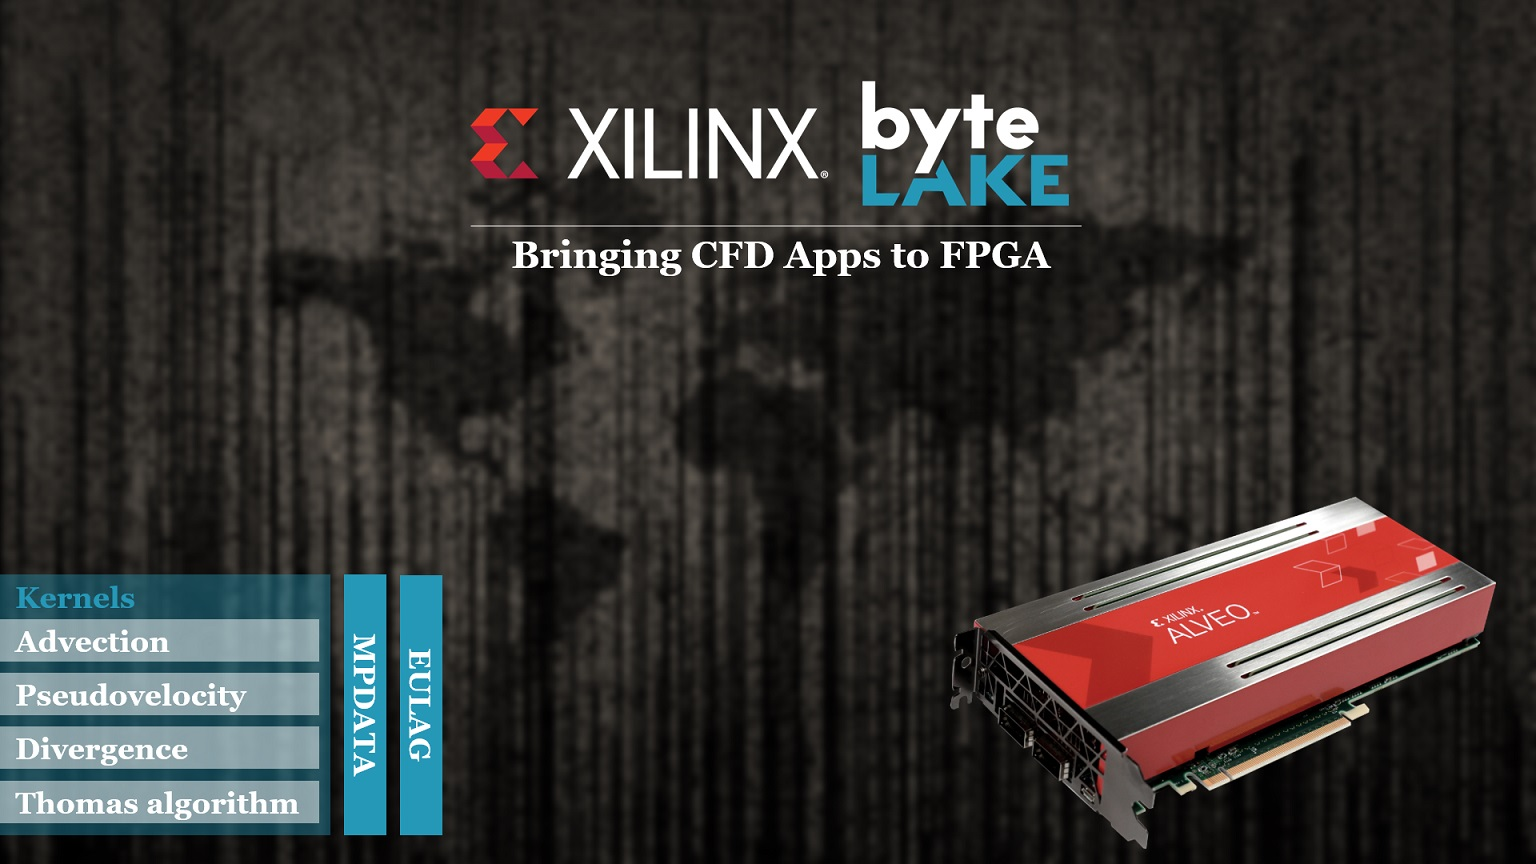 byteLAKE and Xilinx bring CFD Apps to FPGA (byteLAKE)